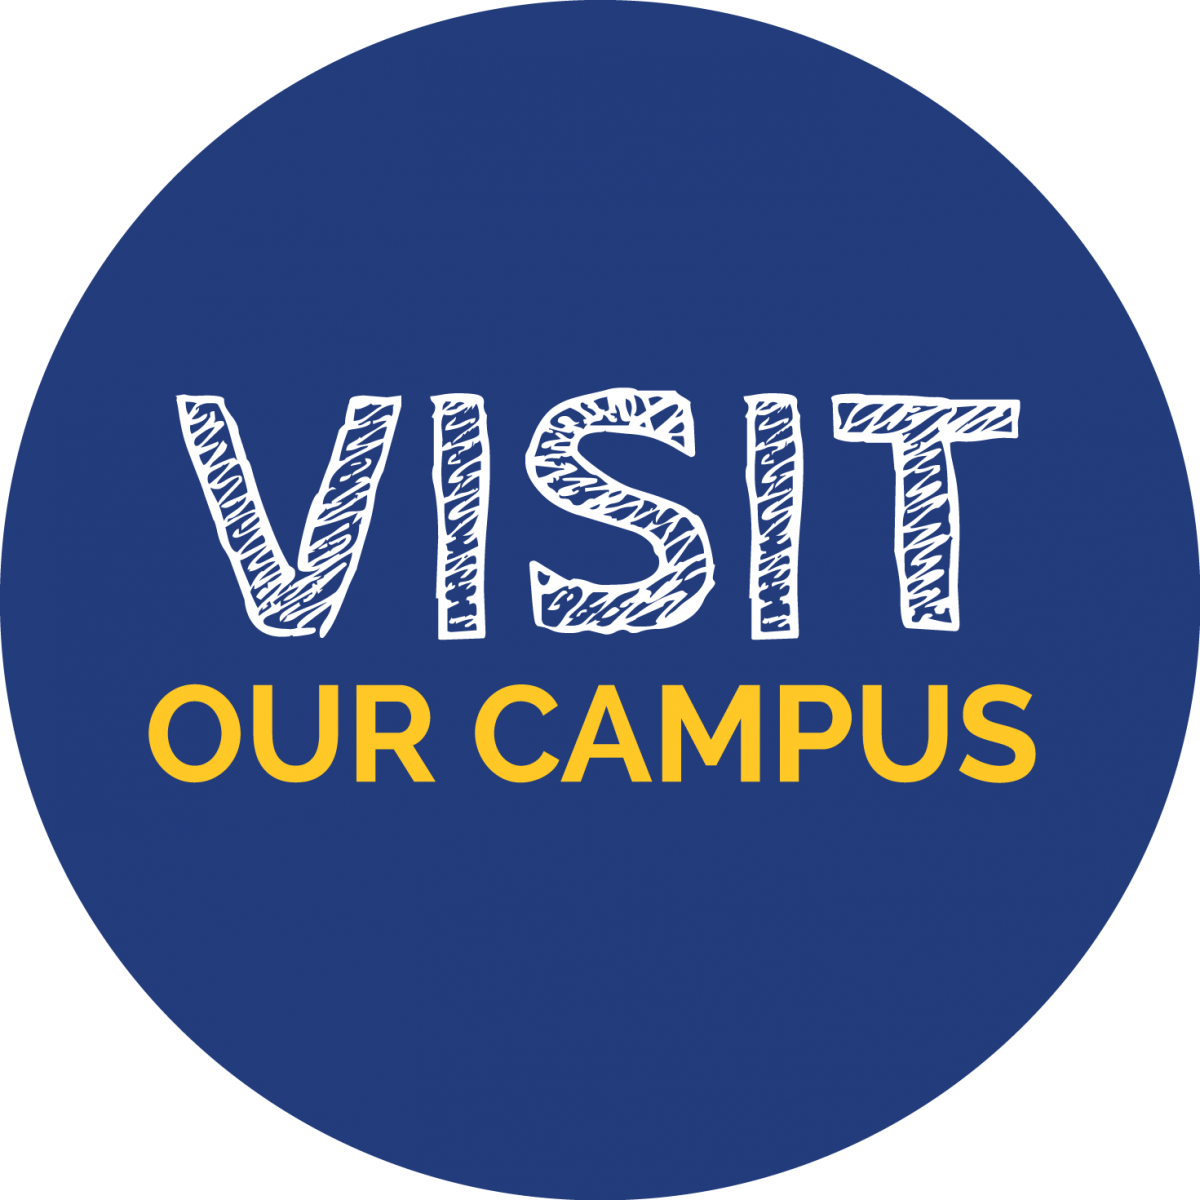 visitcampusbutton.png